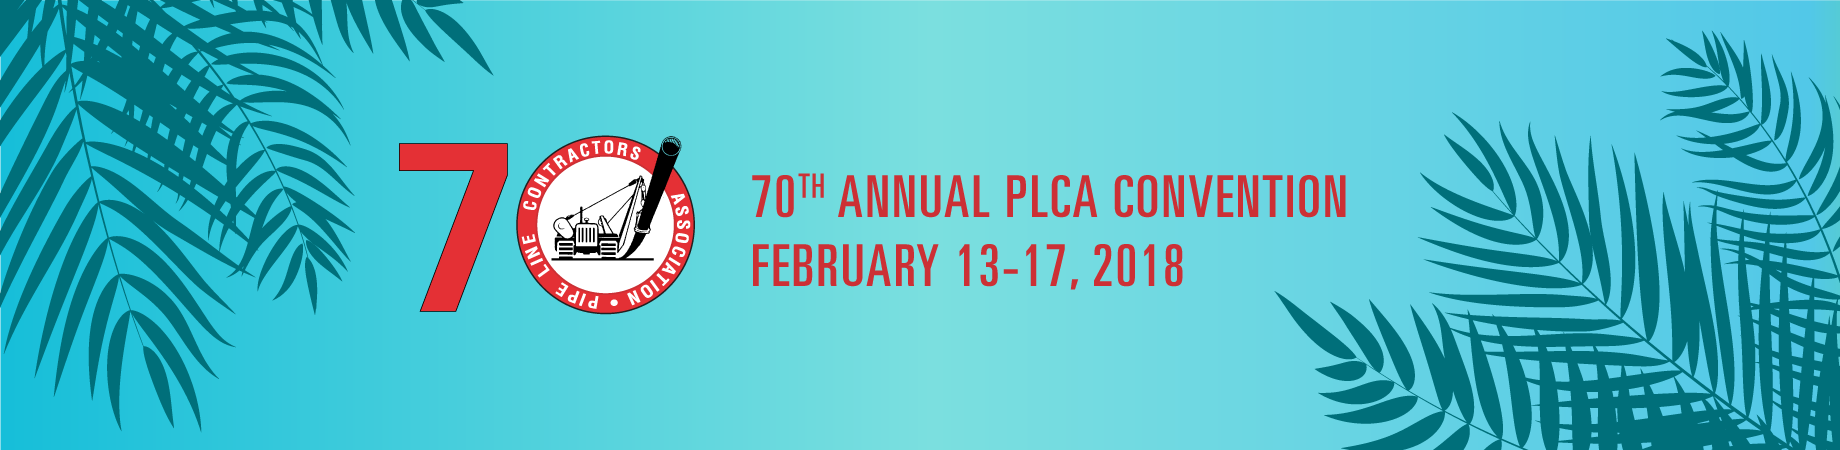 70th Annual PLCA Convention